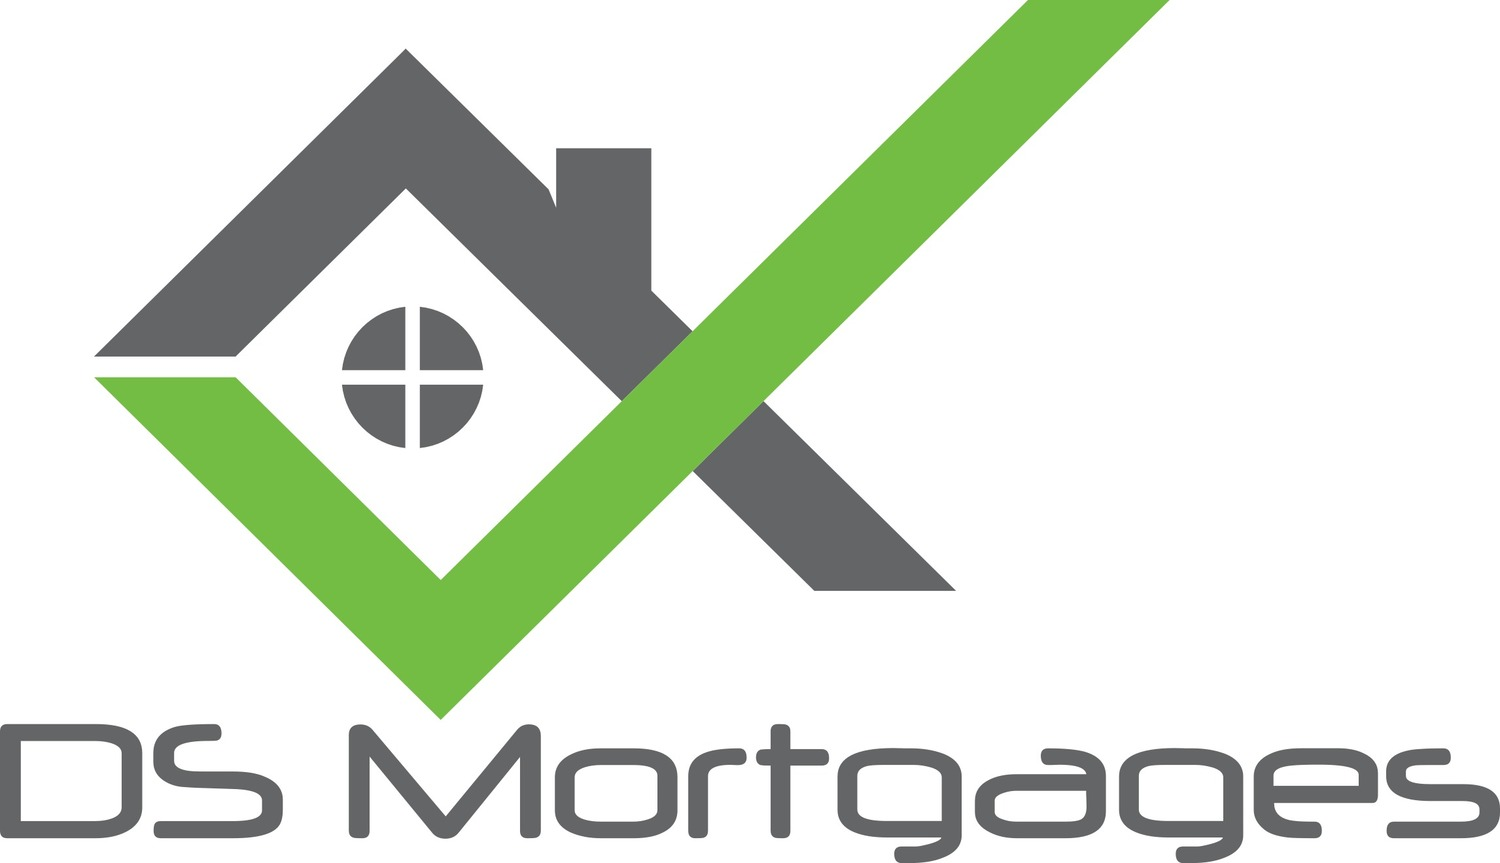 DS Mortgages